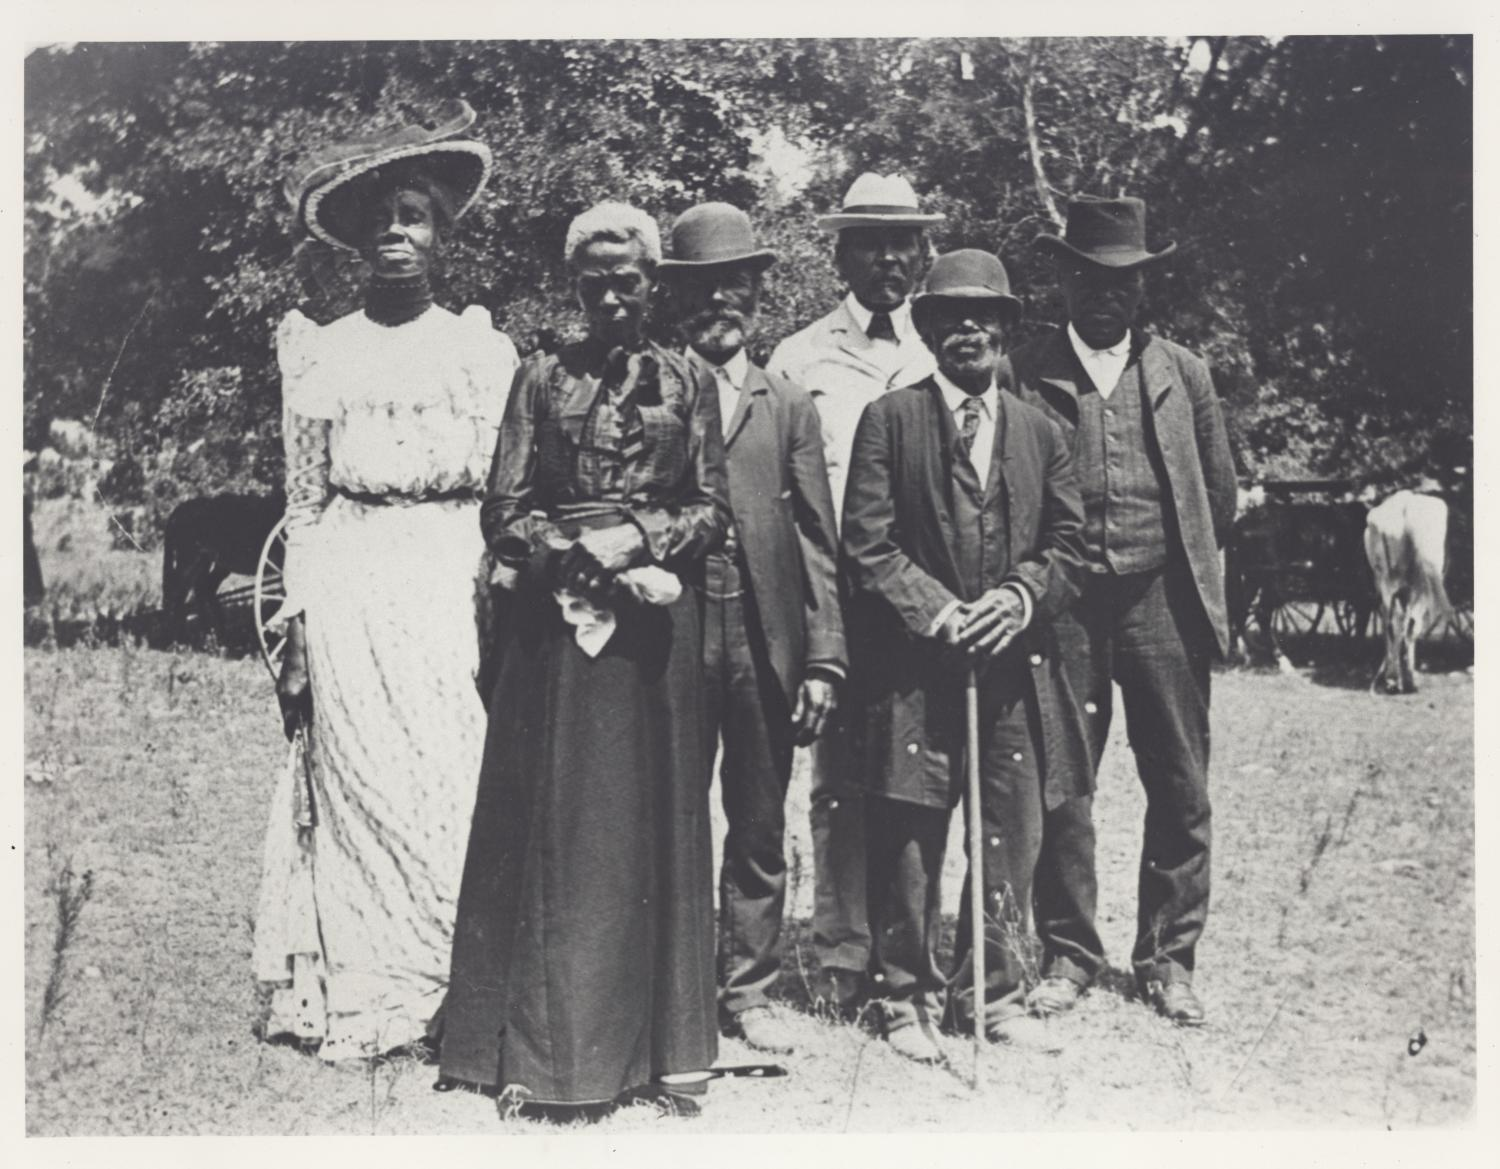 A black and white photograph portrays six Black individuals outdoors standing near one another and facing the camera. Two women at left wear long dresses; four men at right wear suits and hats. Partly visible behind them are carriages and a horse and trees.